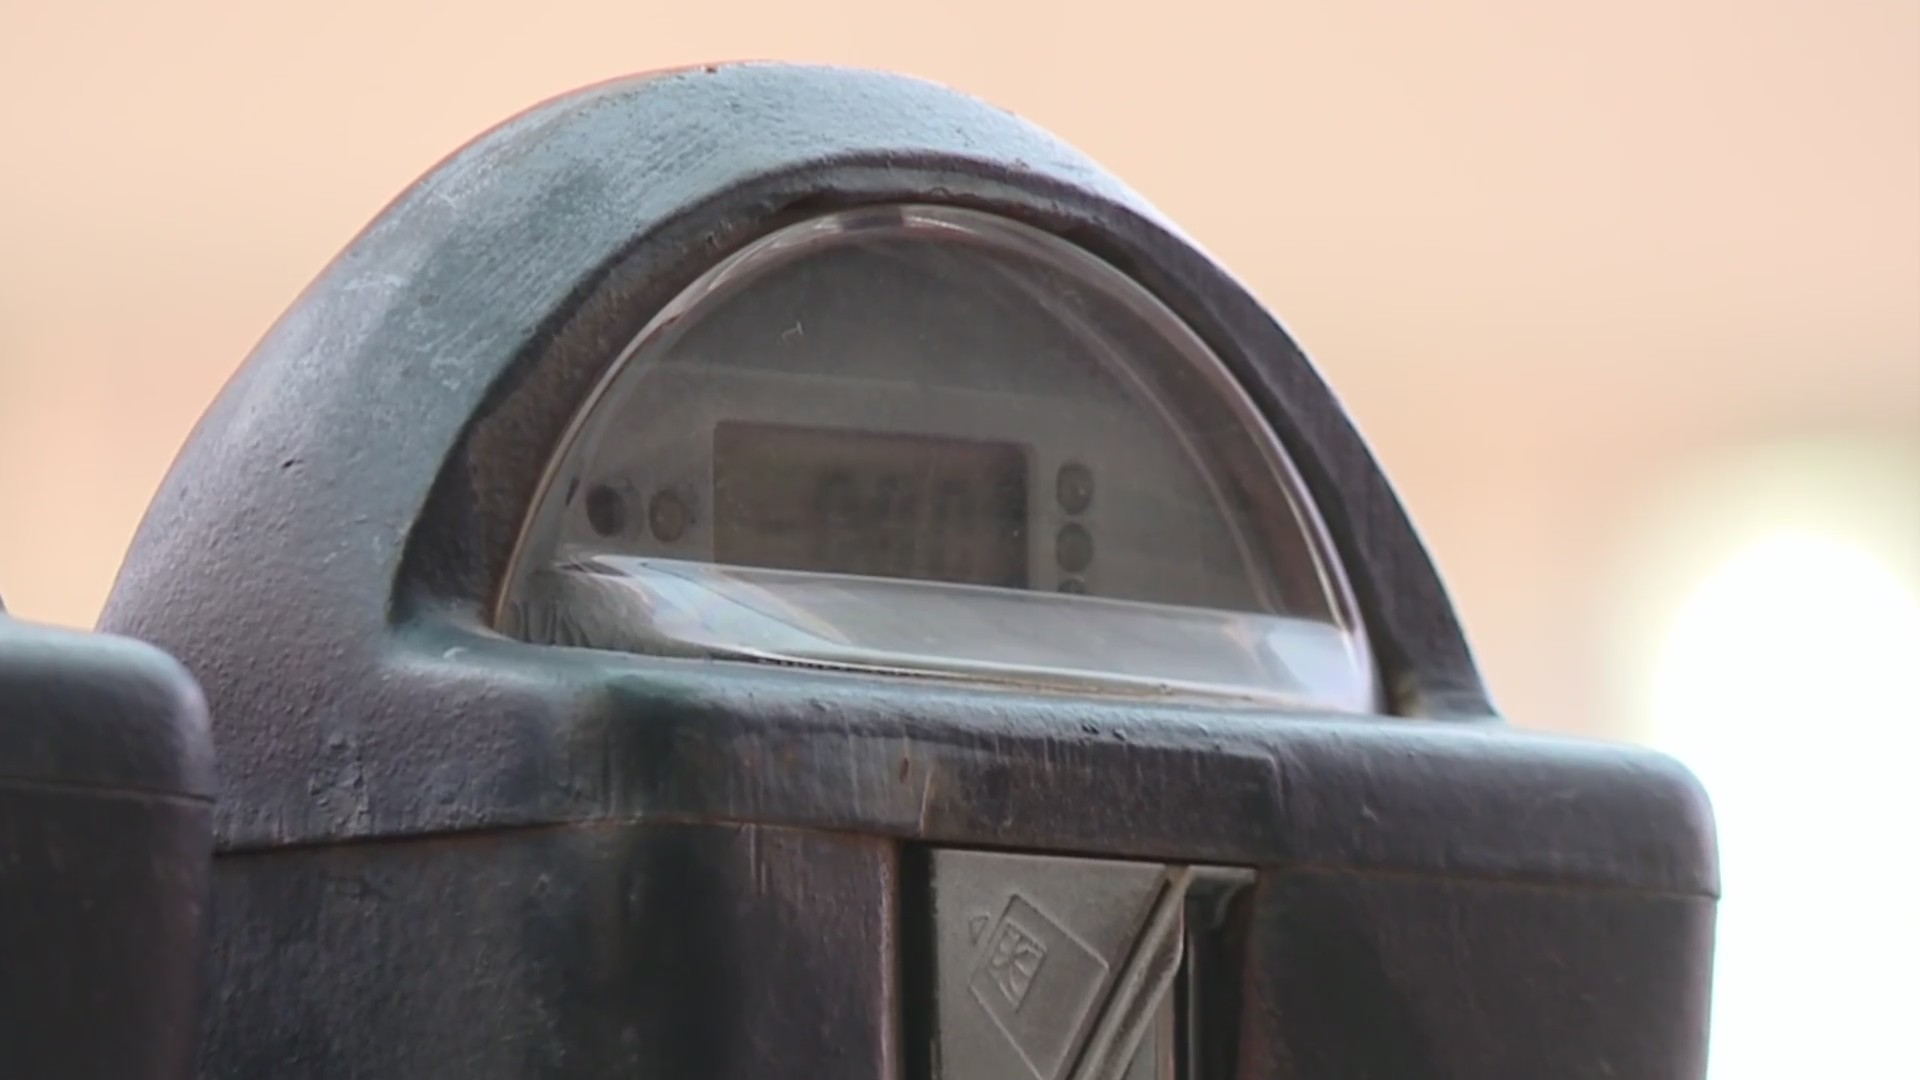 Picture of parking meter